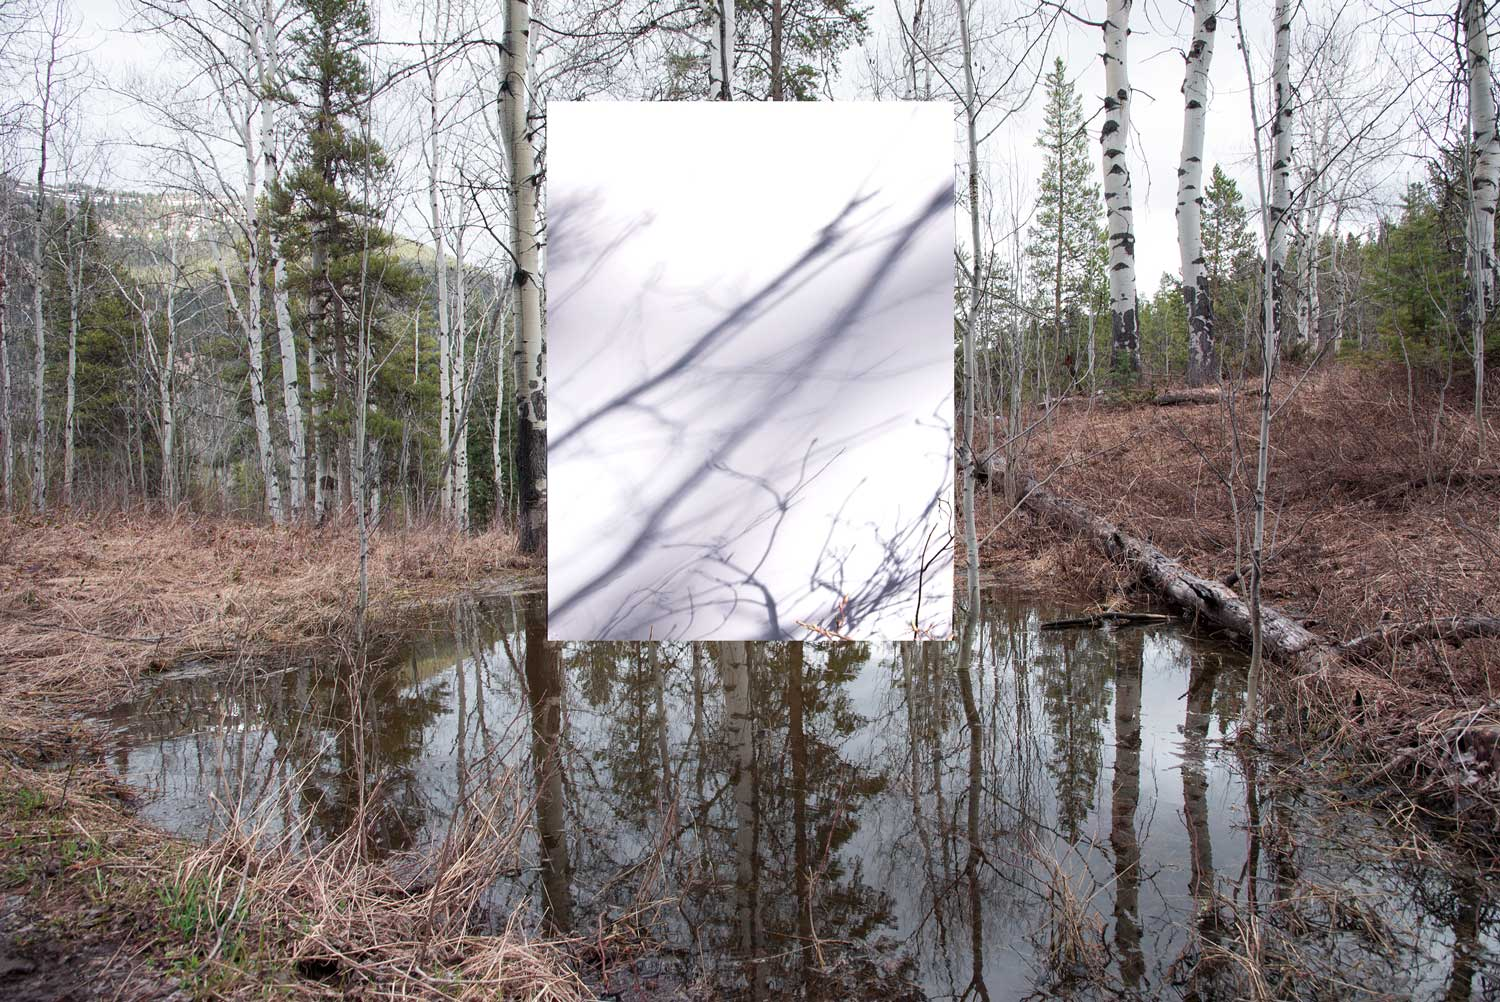 Transcriptions: A Conceptual Evaluation of the Landscape by American Photographer Kyra Schmidt | Yellowtrace